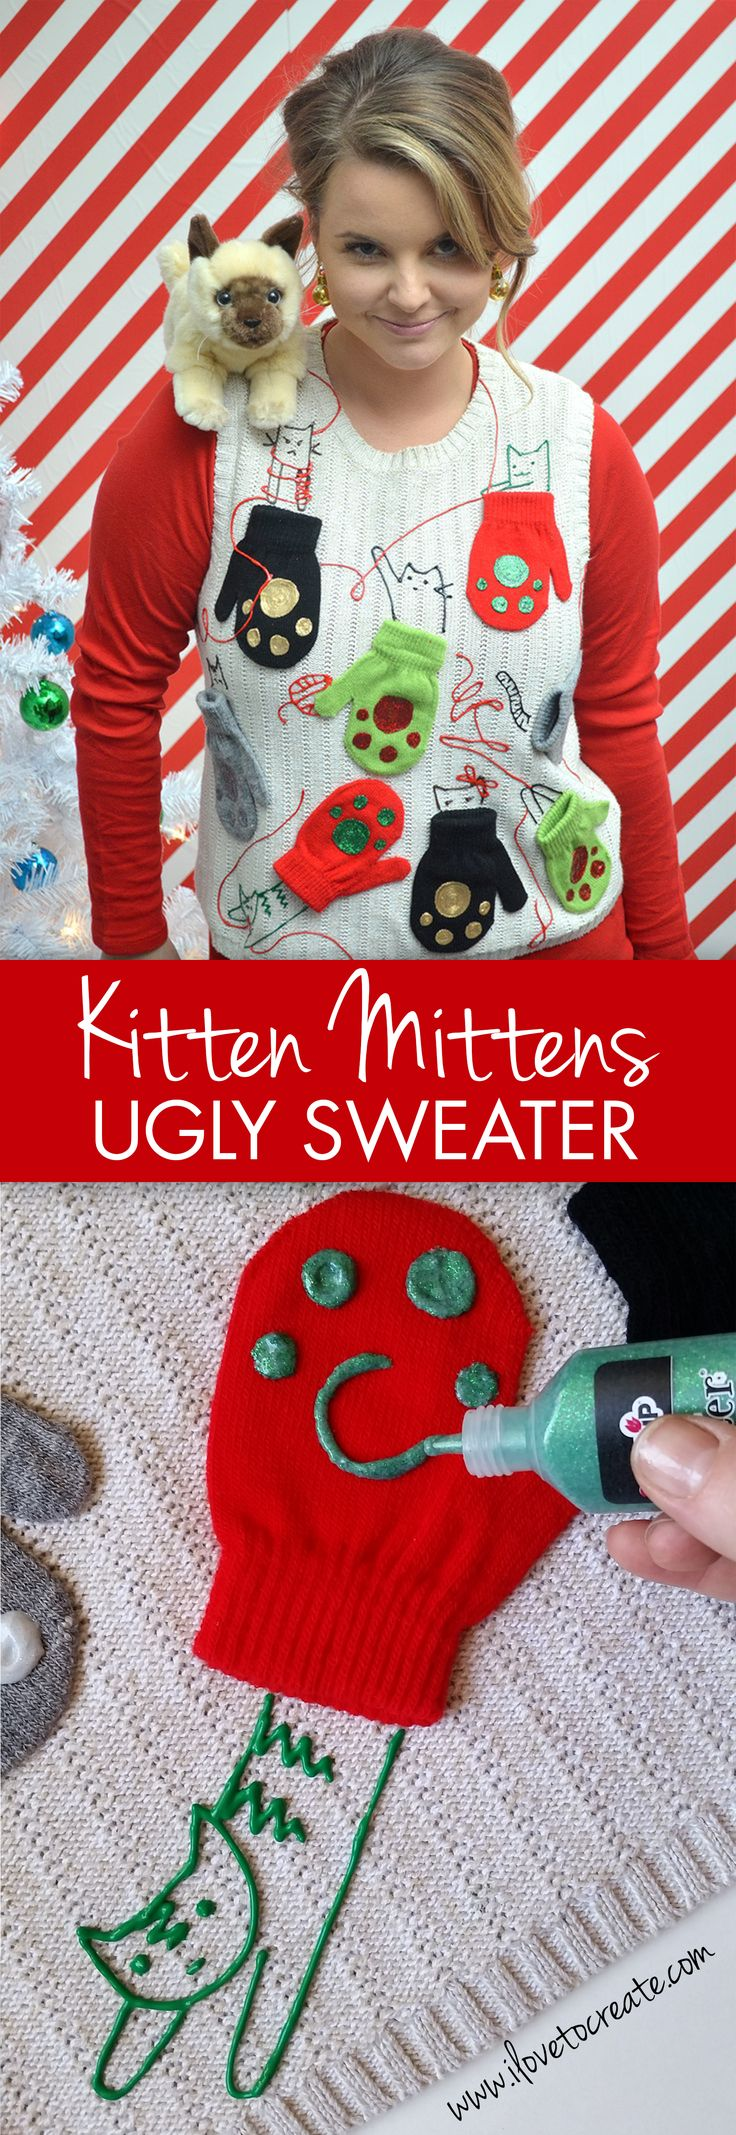 Make your own kitten mittens ugly sweater for your ugly sweater holiday party!  A great idea for that crafty cat lady in your life! It was created using Tulip Dimensional Paint and Aleene's Quick Dry Fabric Fusion to glue on the mittens!  So cute!